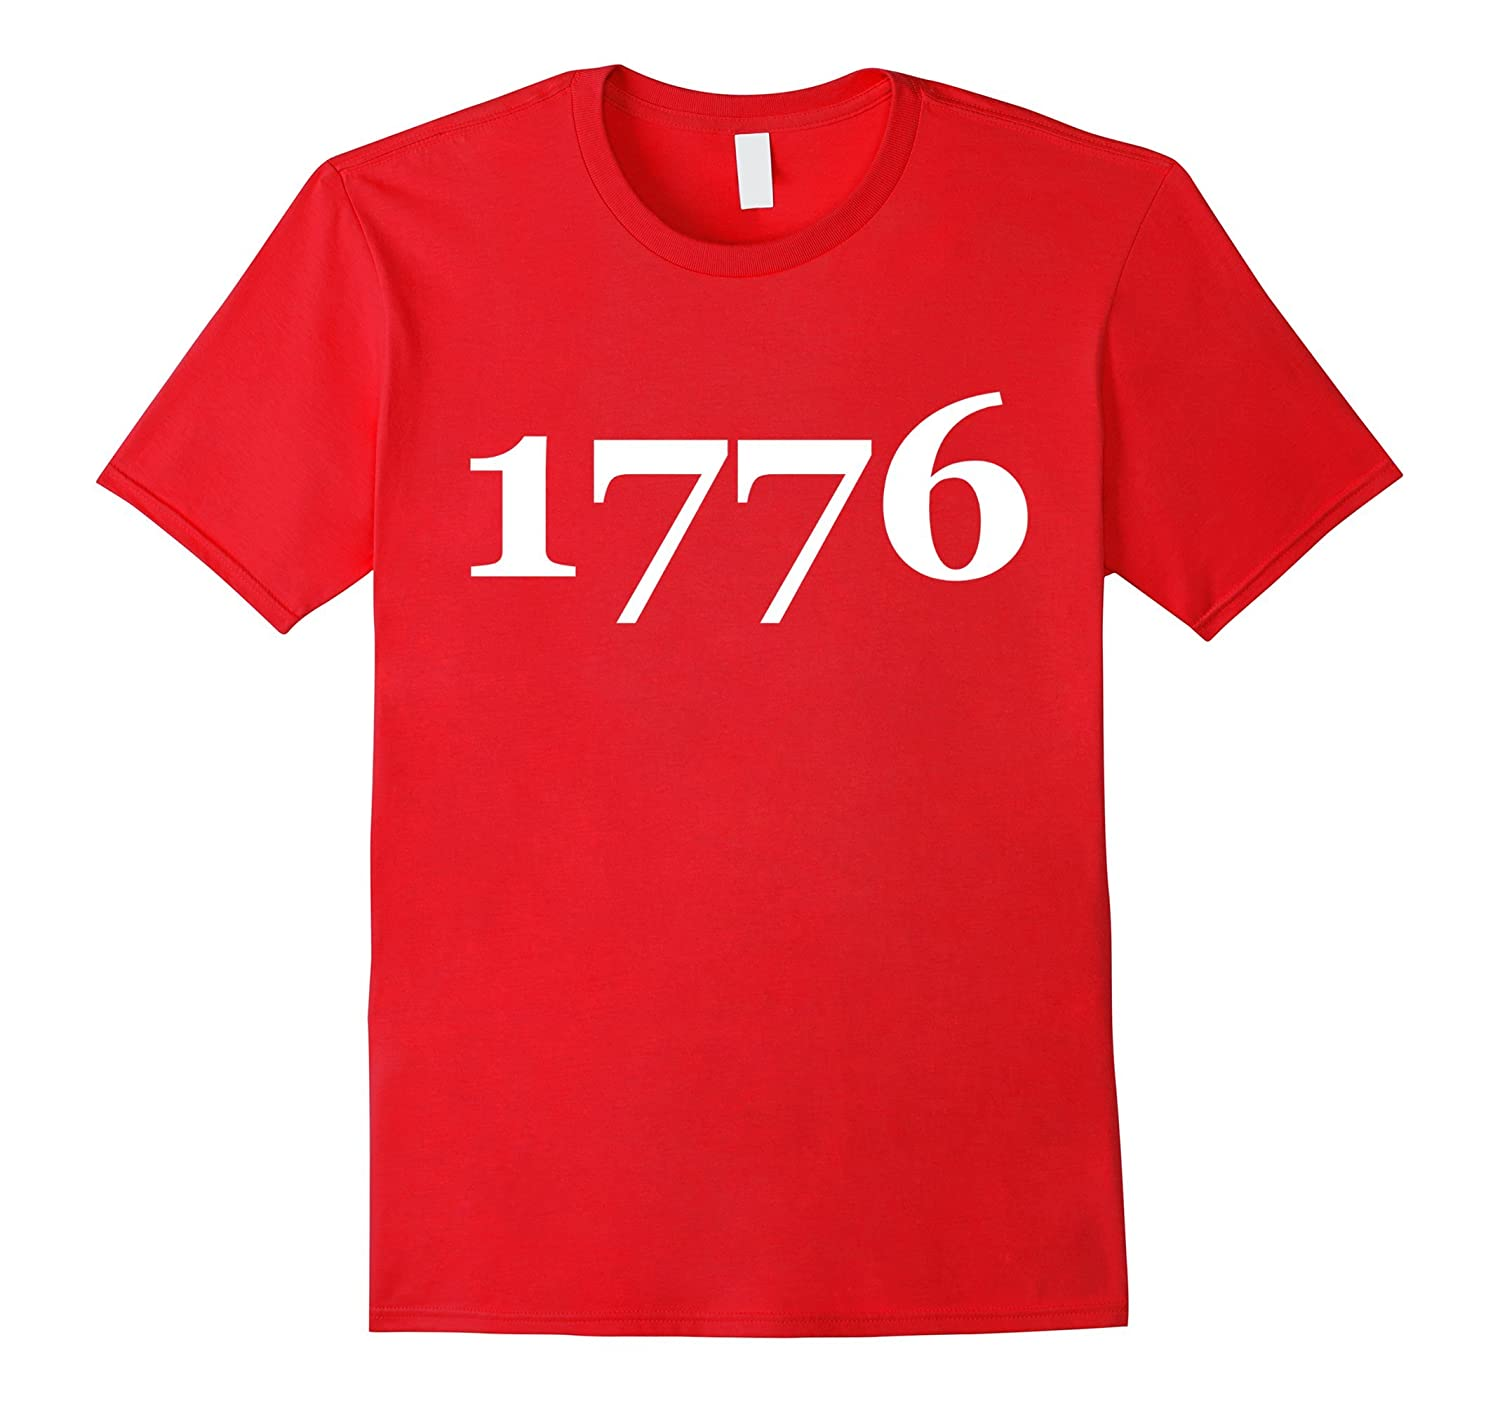 1776 The Year Declaration of Independence Unisex T-Shirt Tee-Vaci